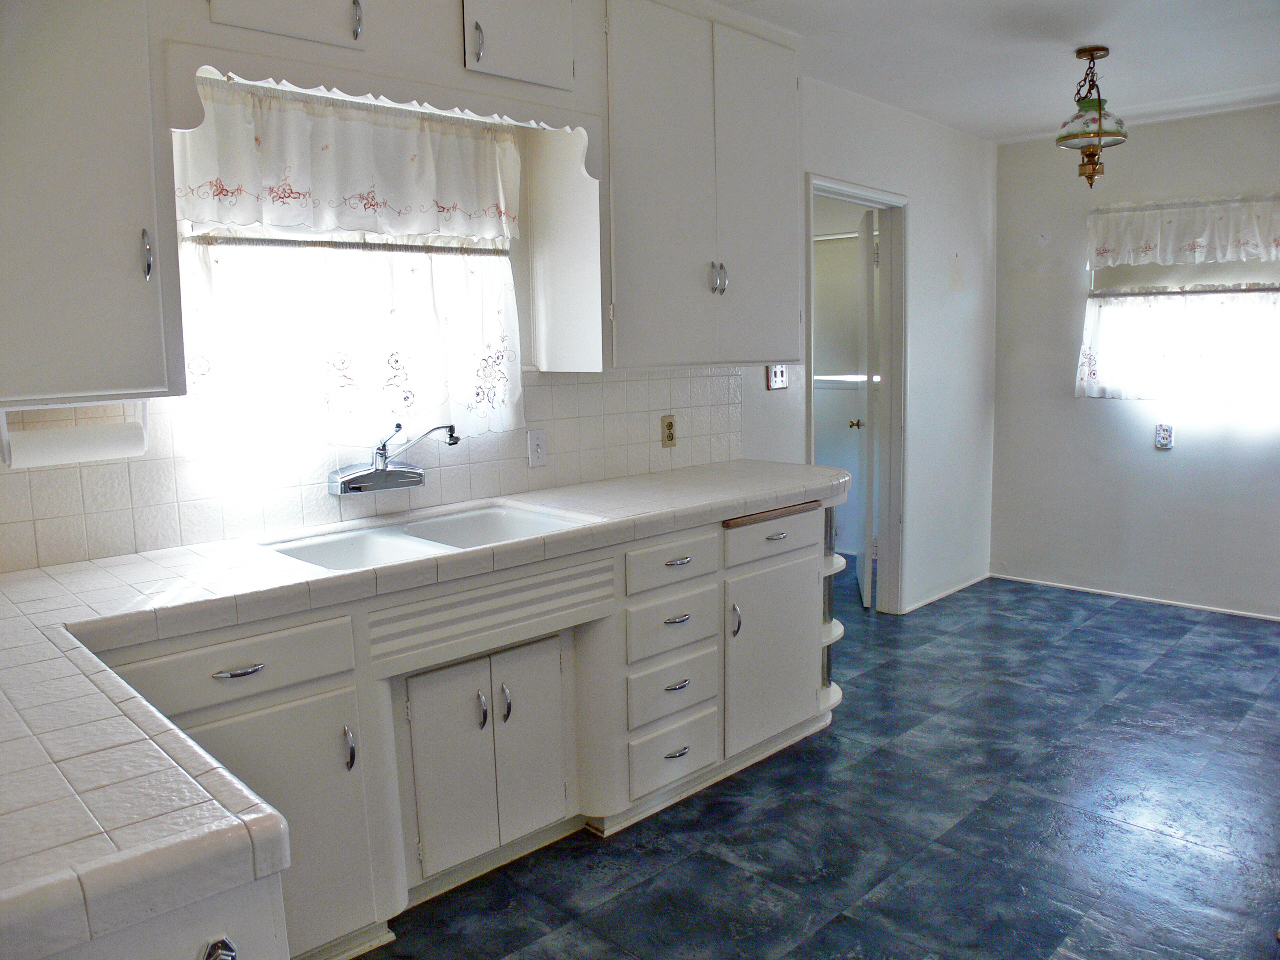 Bright and spacious family kitchen with tile counter top and breakfast nook area.